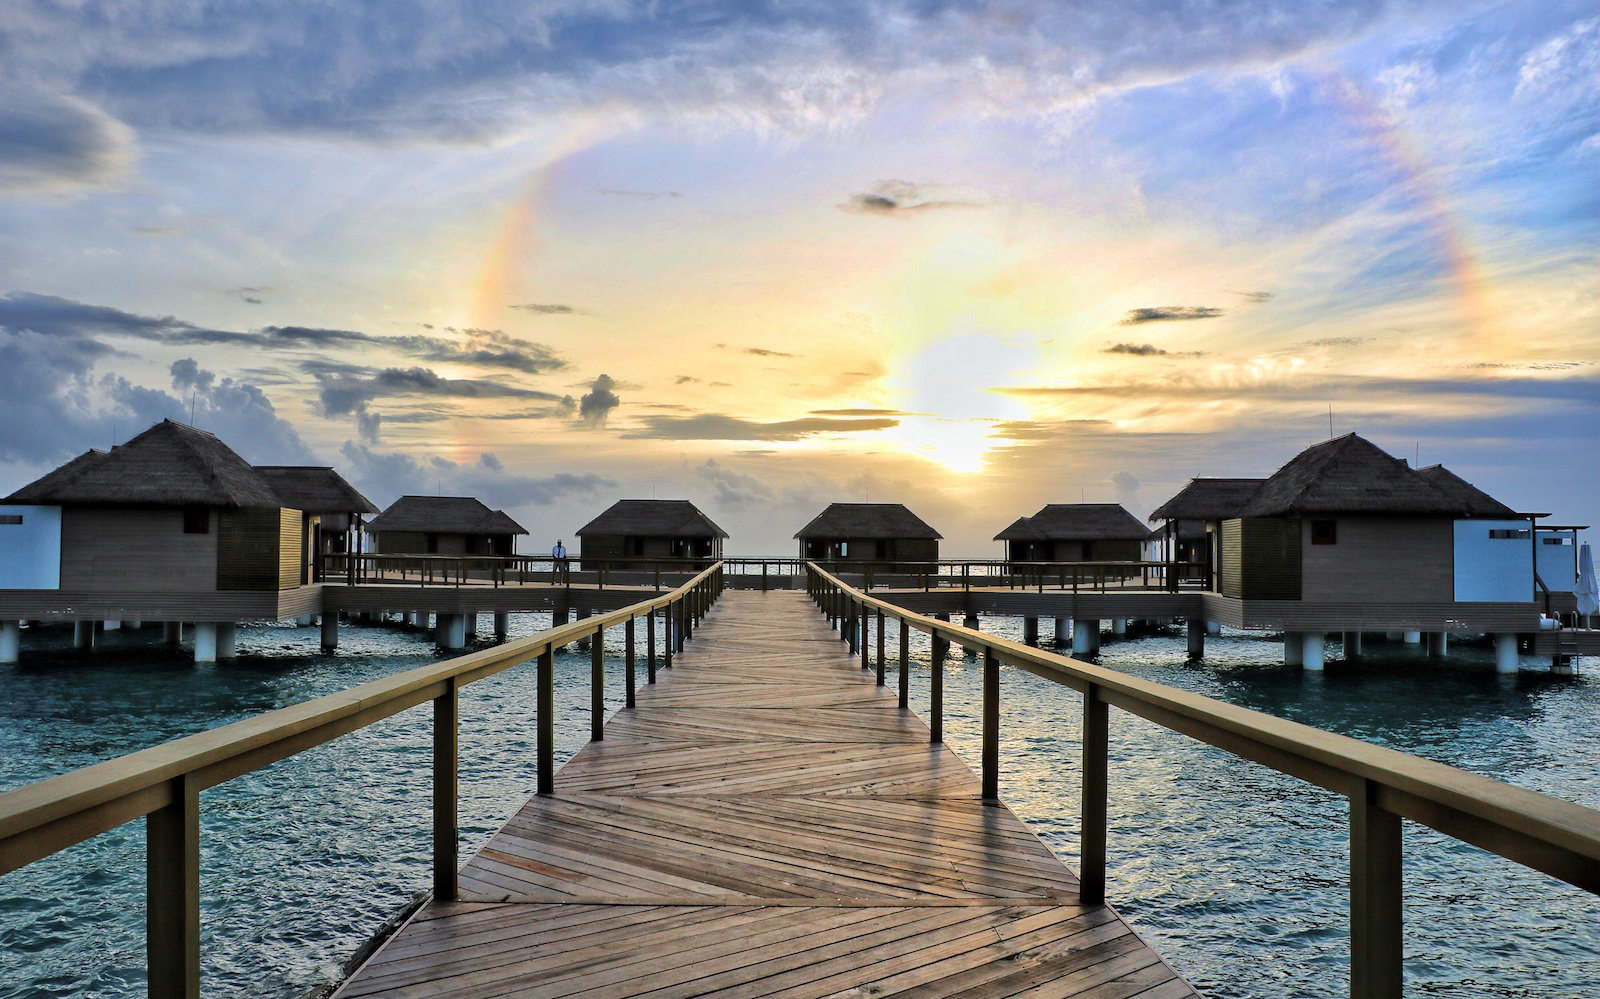 Jamaica S Newest Overwater Bungalows Come With The Bathtub